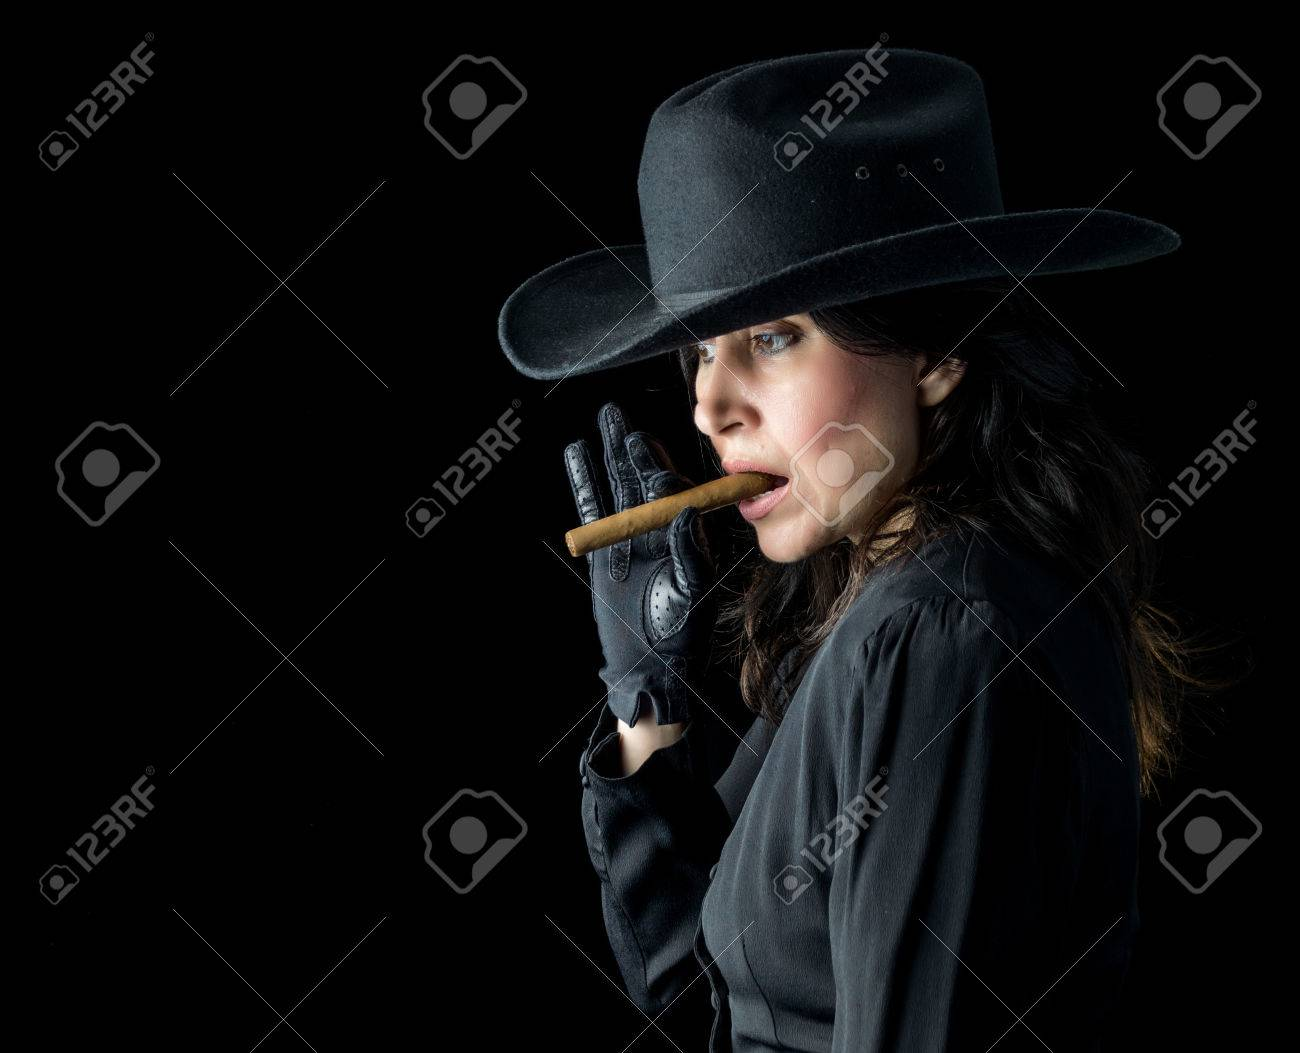 8be30f0f9 Brunette woman in black dress, black gloves, and wearing a black..